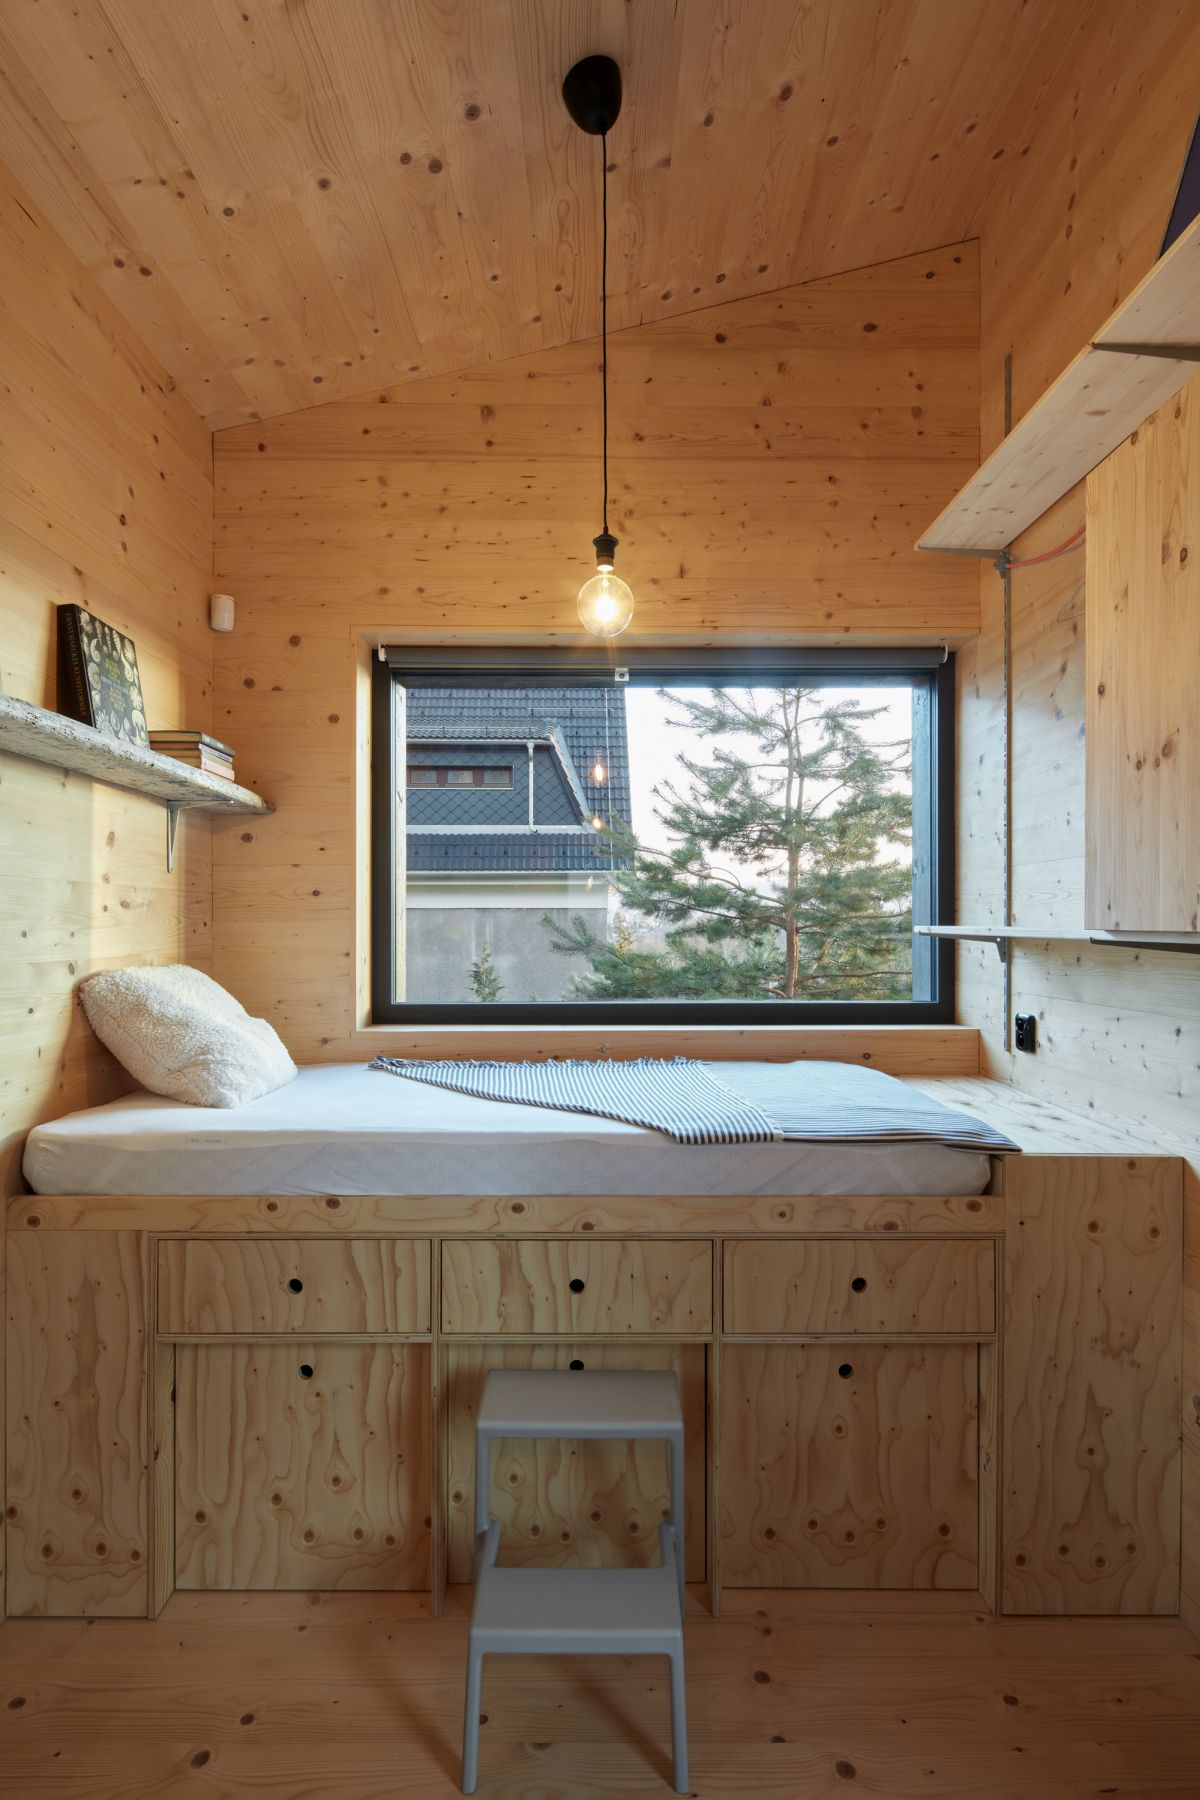 The bedrooms feature clever storage solutions which make up for the small footprint